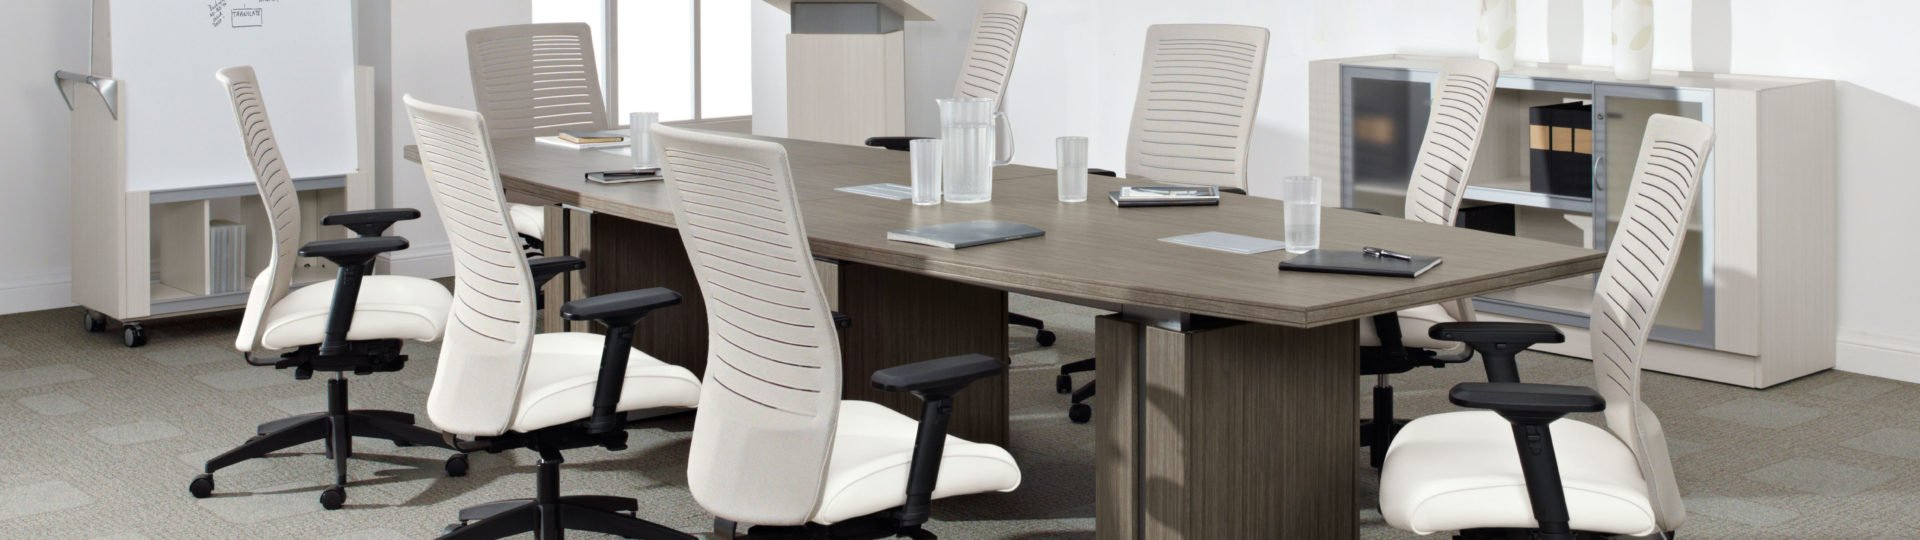 Beau Premium Conference Room Tables And Other Furniture Available To Businesses  In The Woodlands, TX